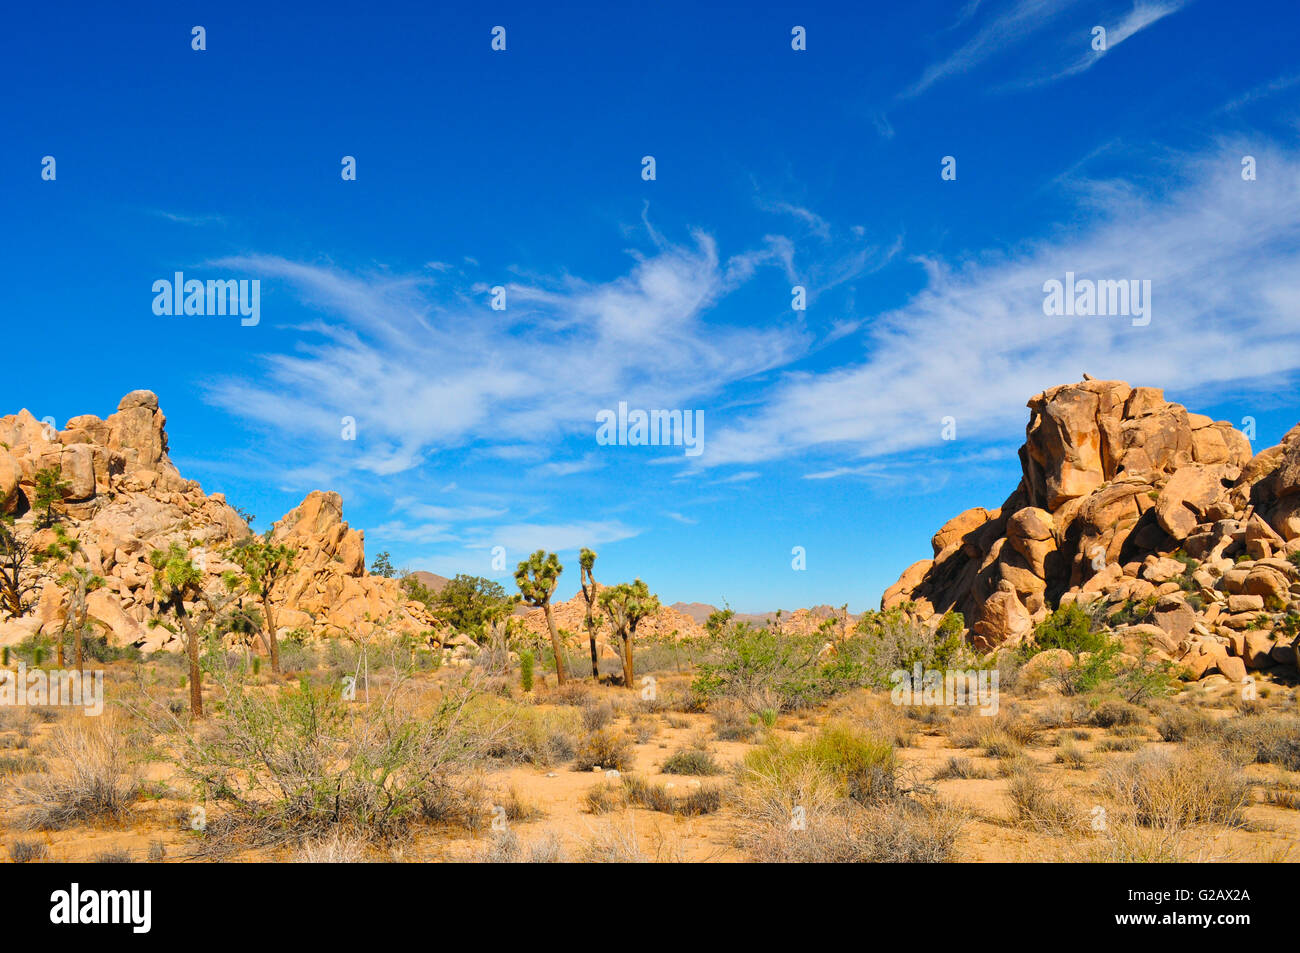 Joshua tree National park in South California's desert landscape on  a sunny hot day - Stock Image